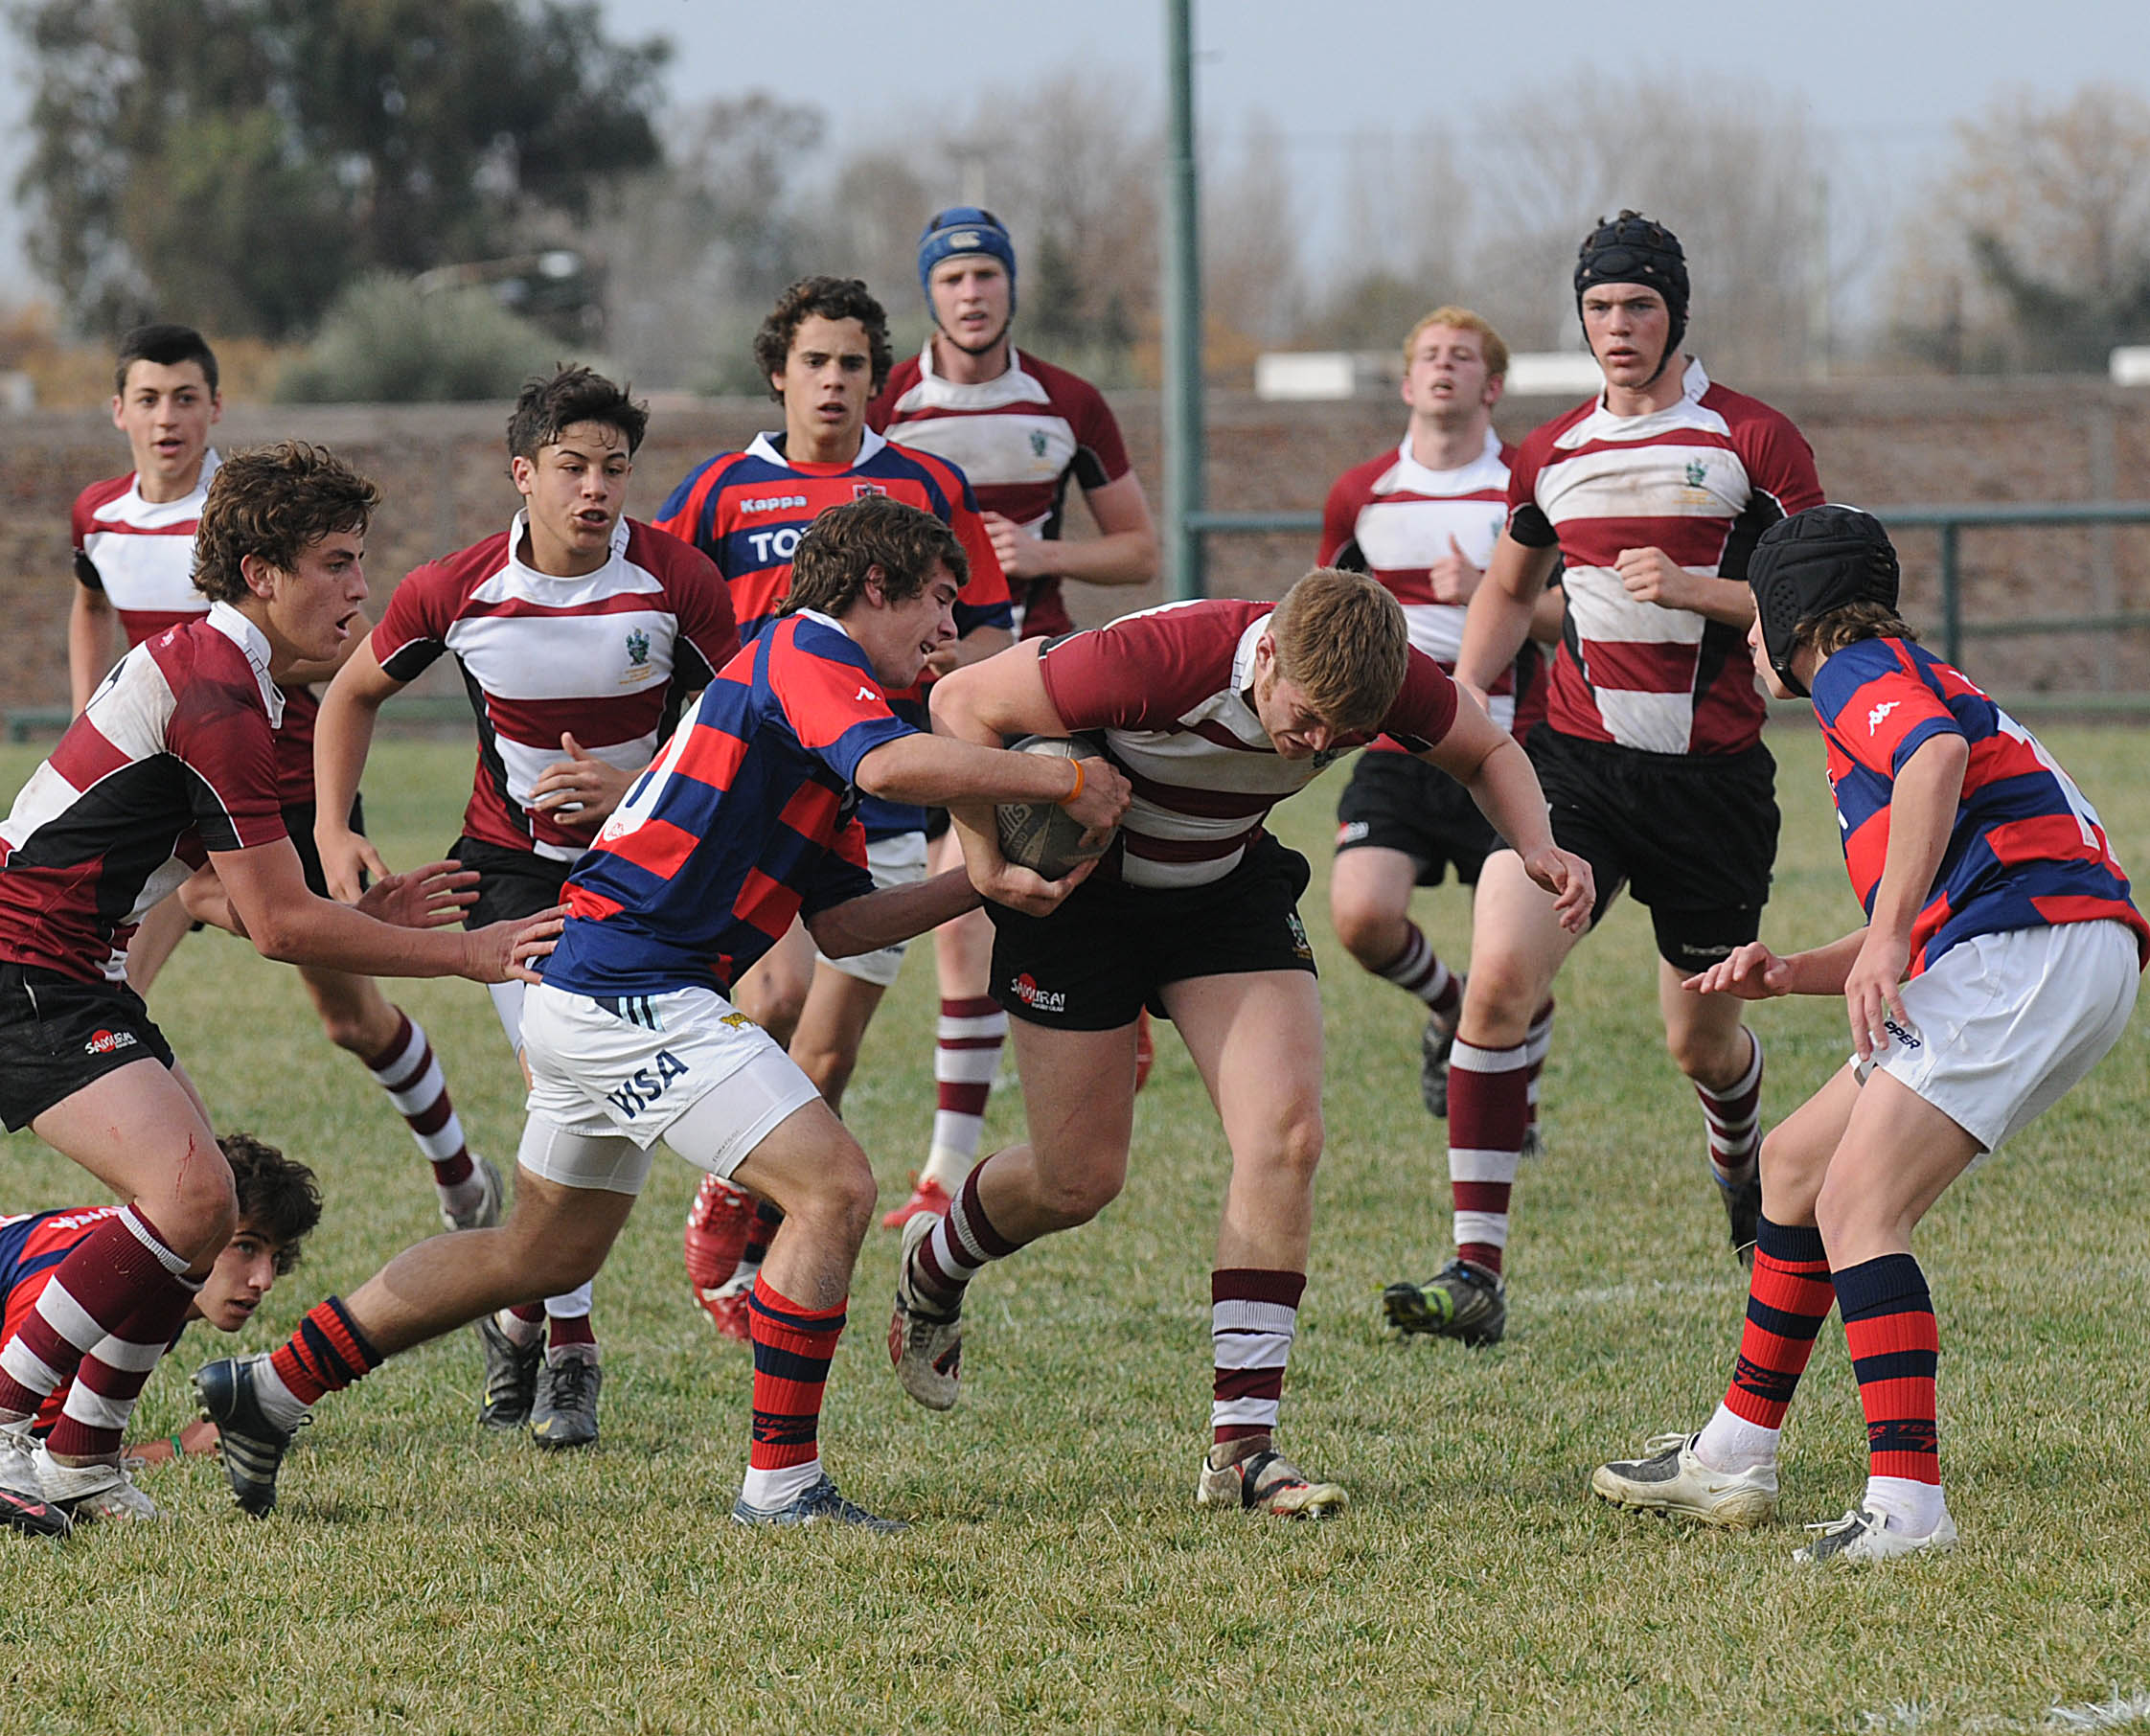 School Rugby Tours